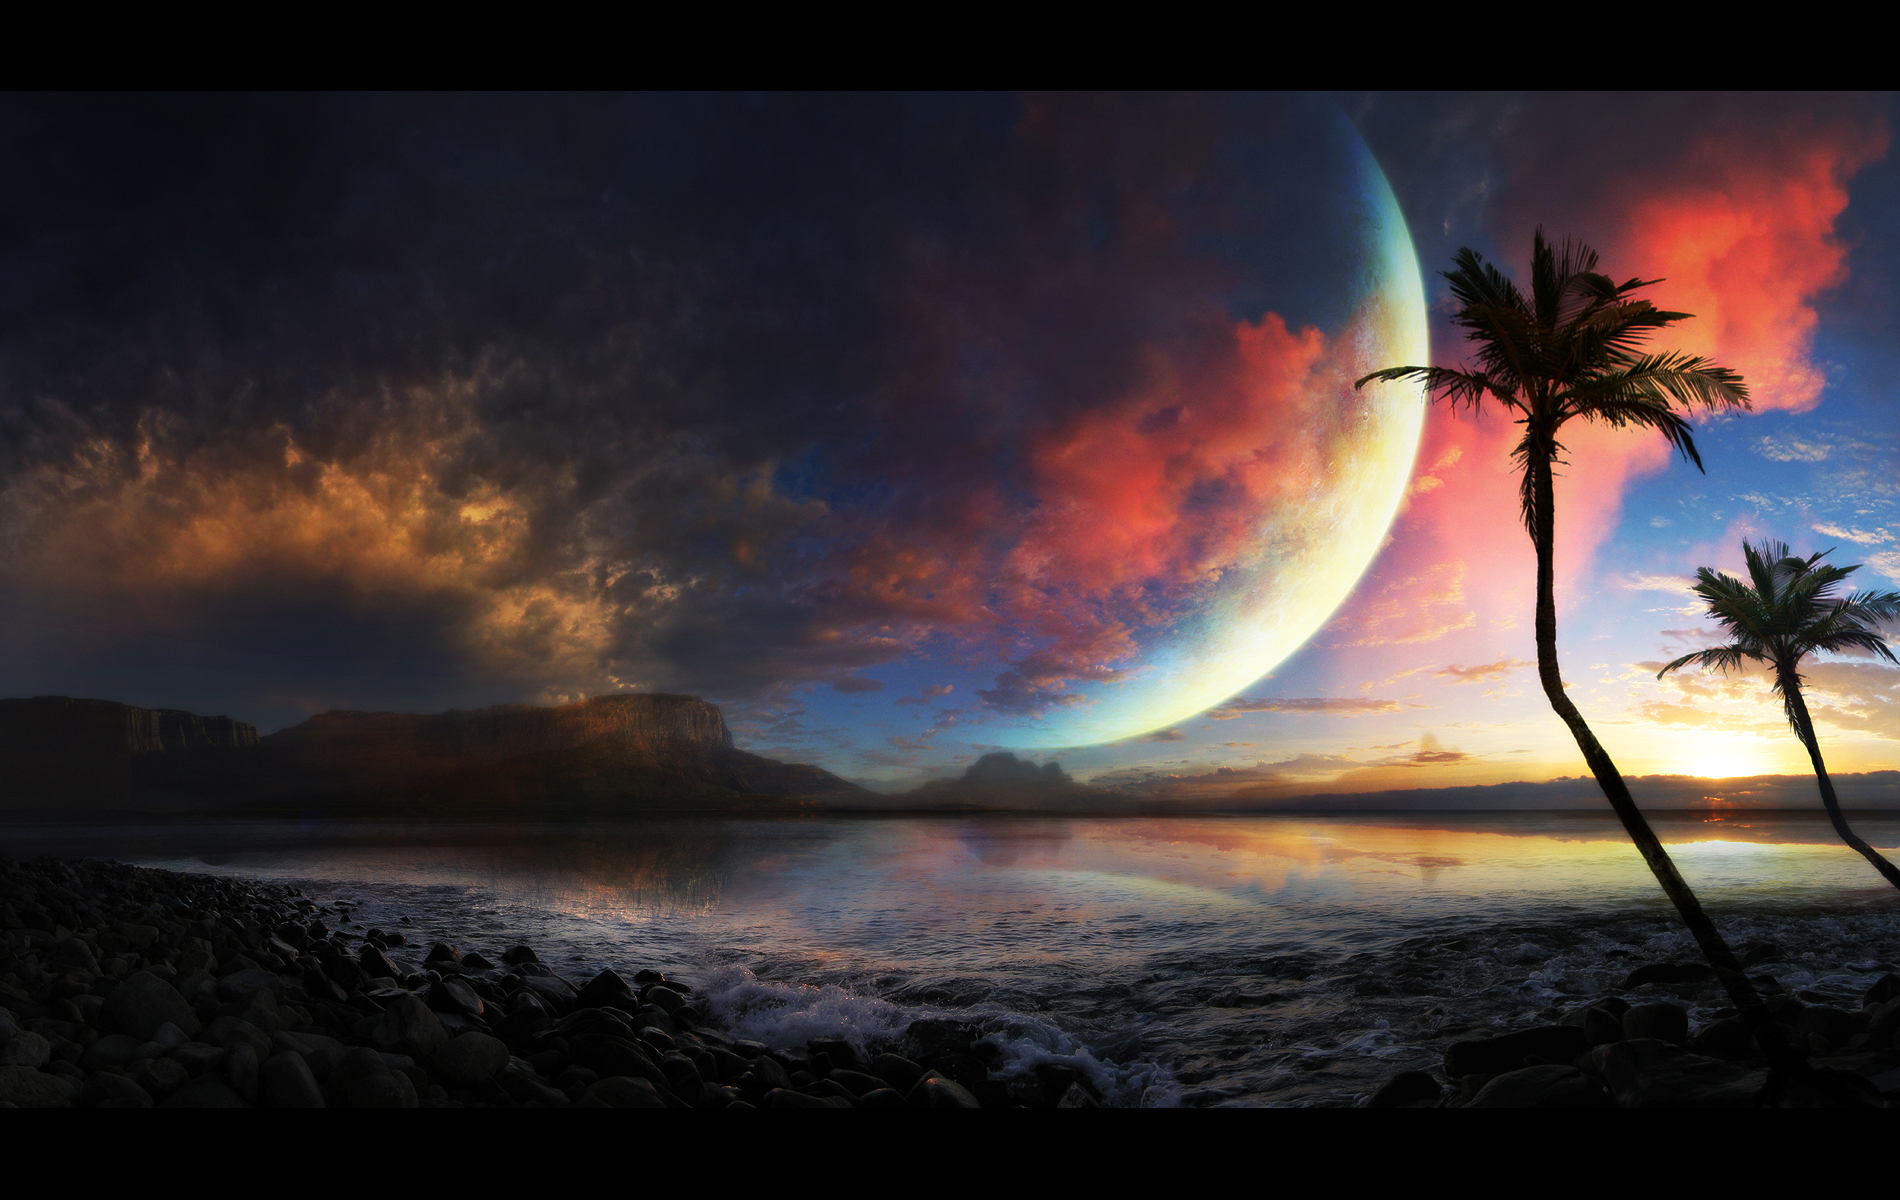 Landscape wallpaper and background 1900x1200 id 326480 for Sci fi background